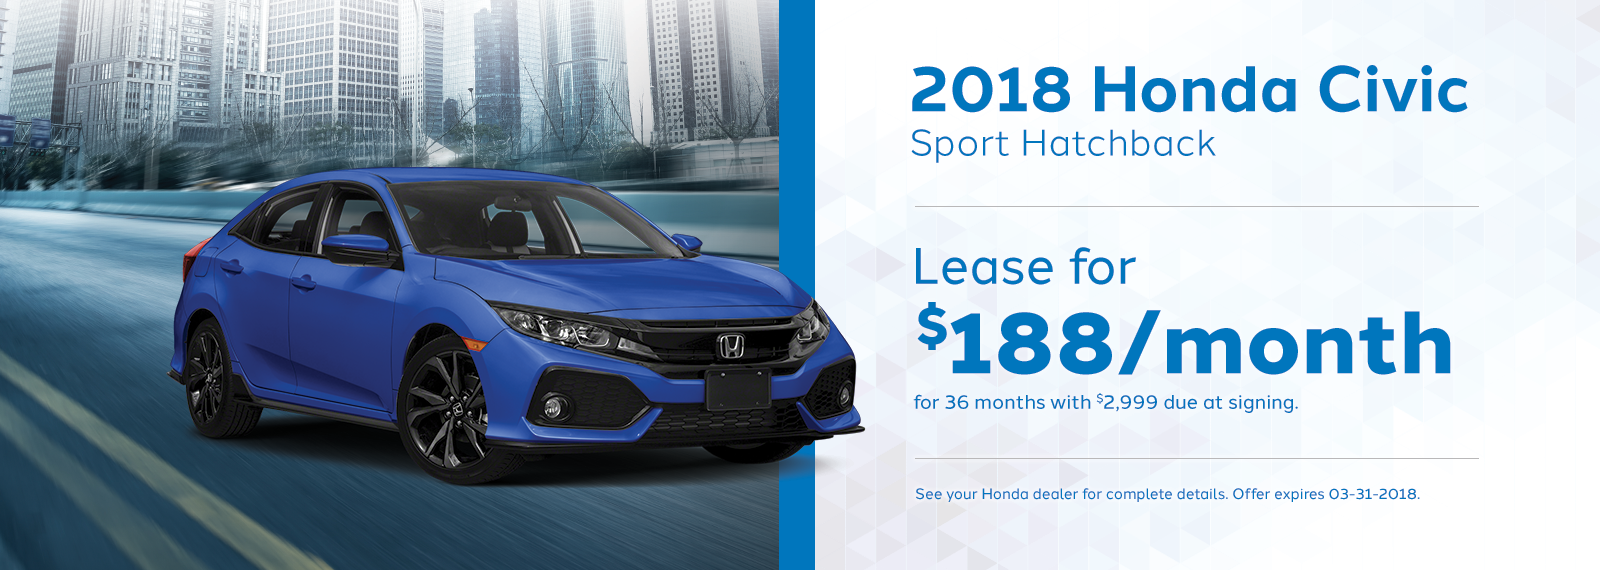 Civic March Offer Genthe Honda Homepage.